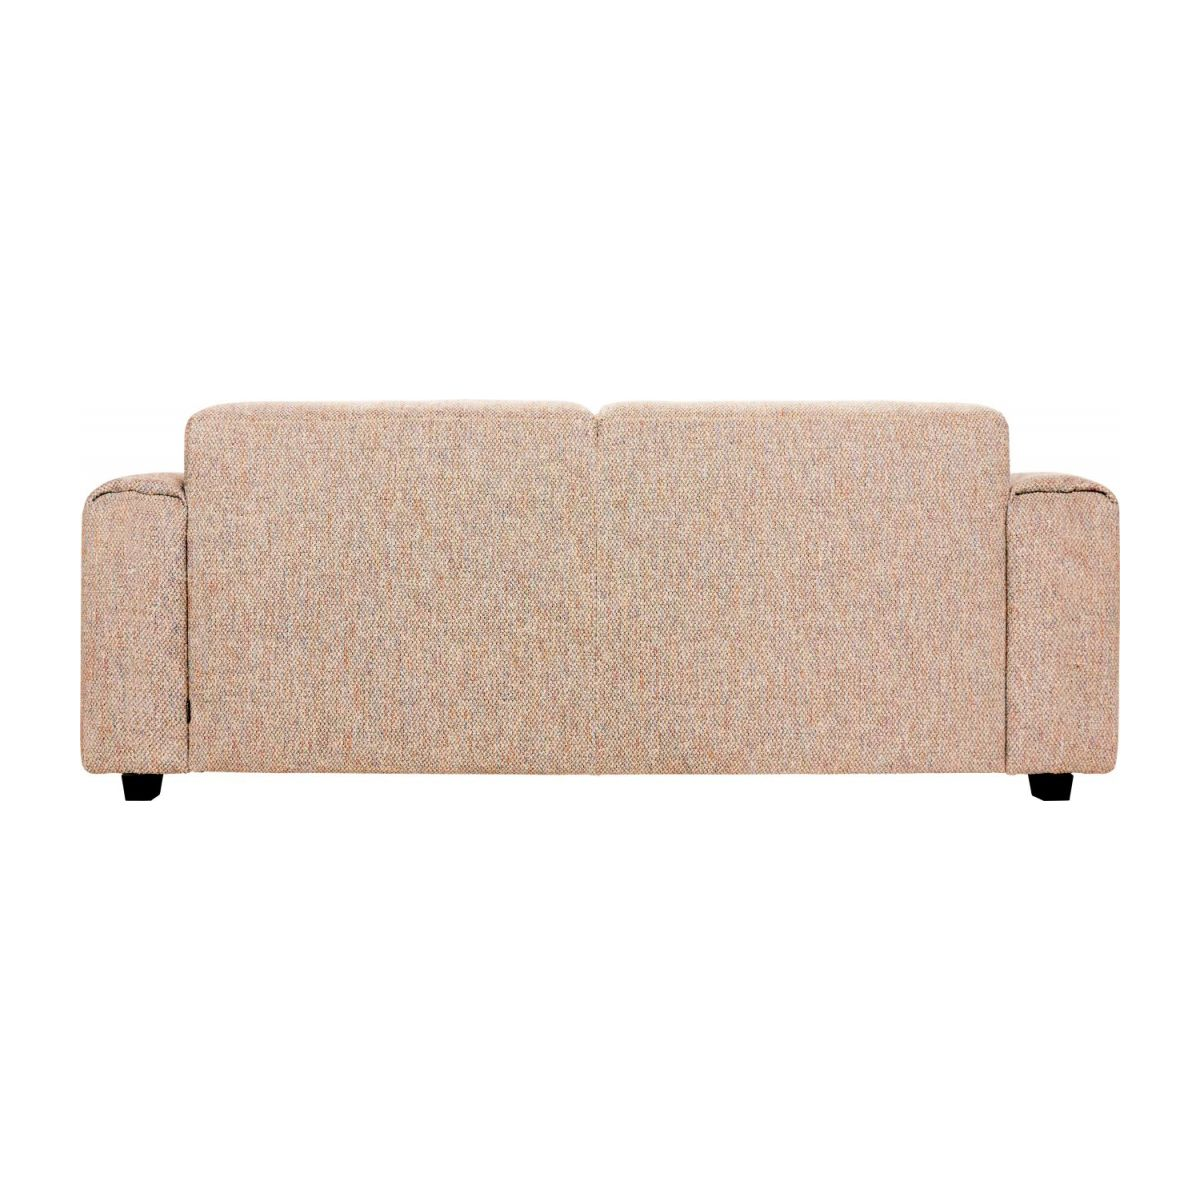 2-seater sofa in Bellagio fabric, passion orange n°5